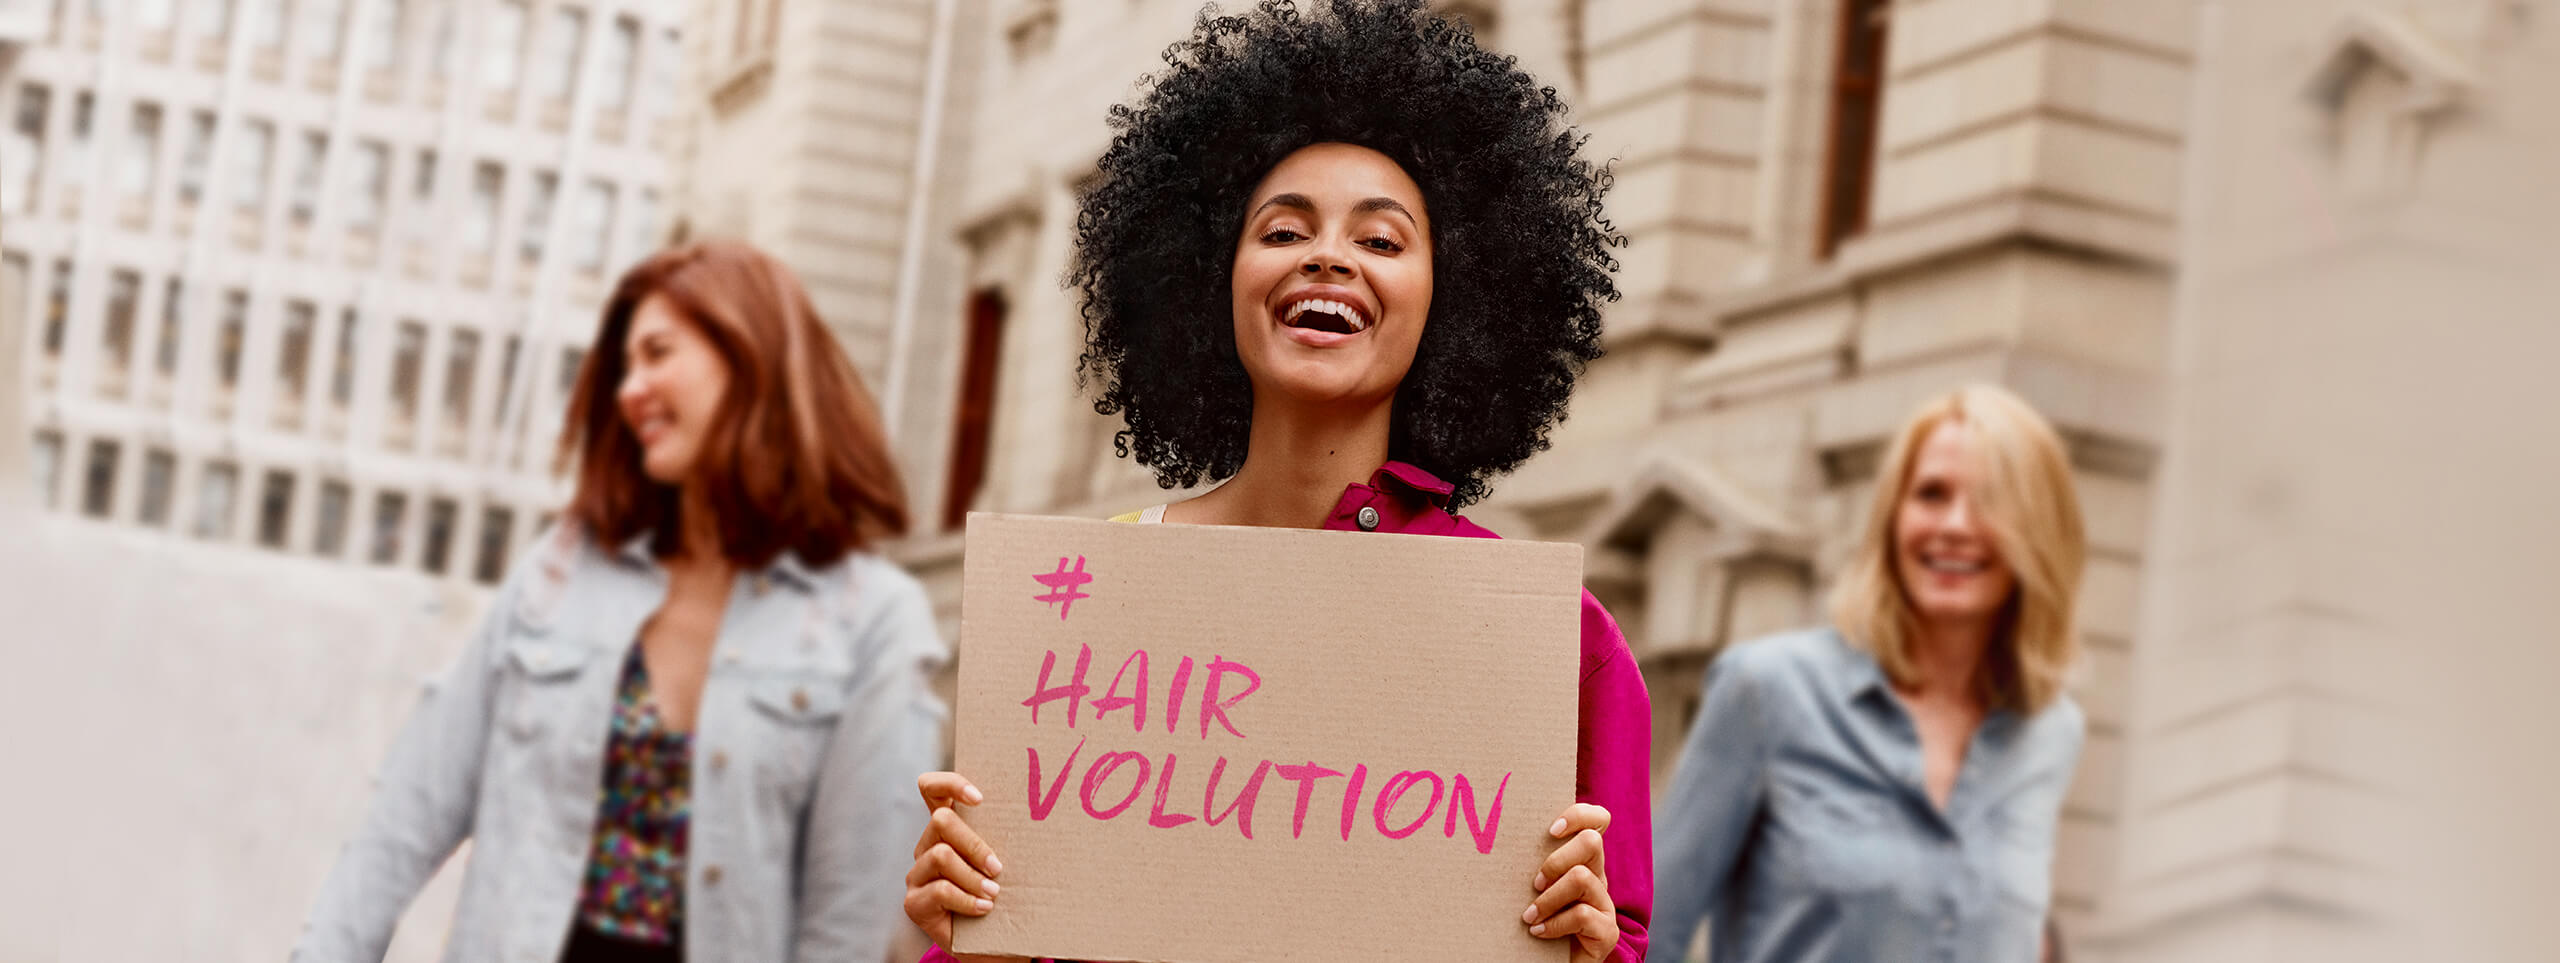 only_love_com_hair_volution_2560x963